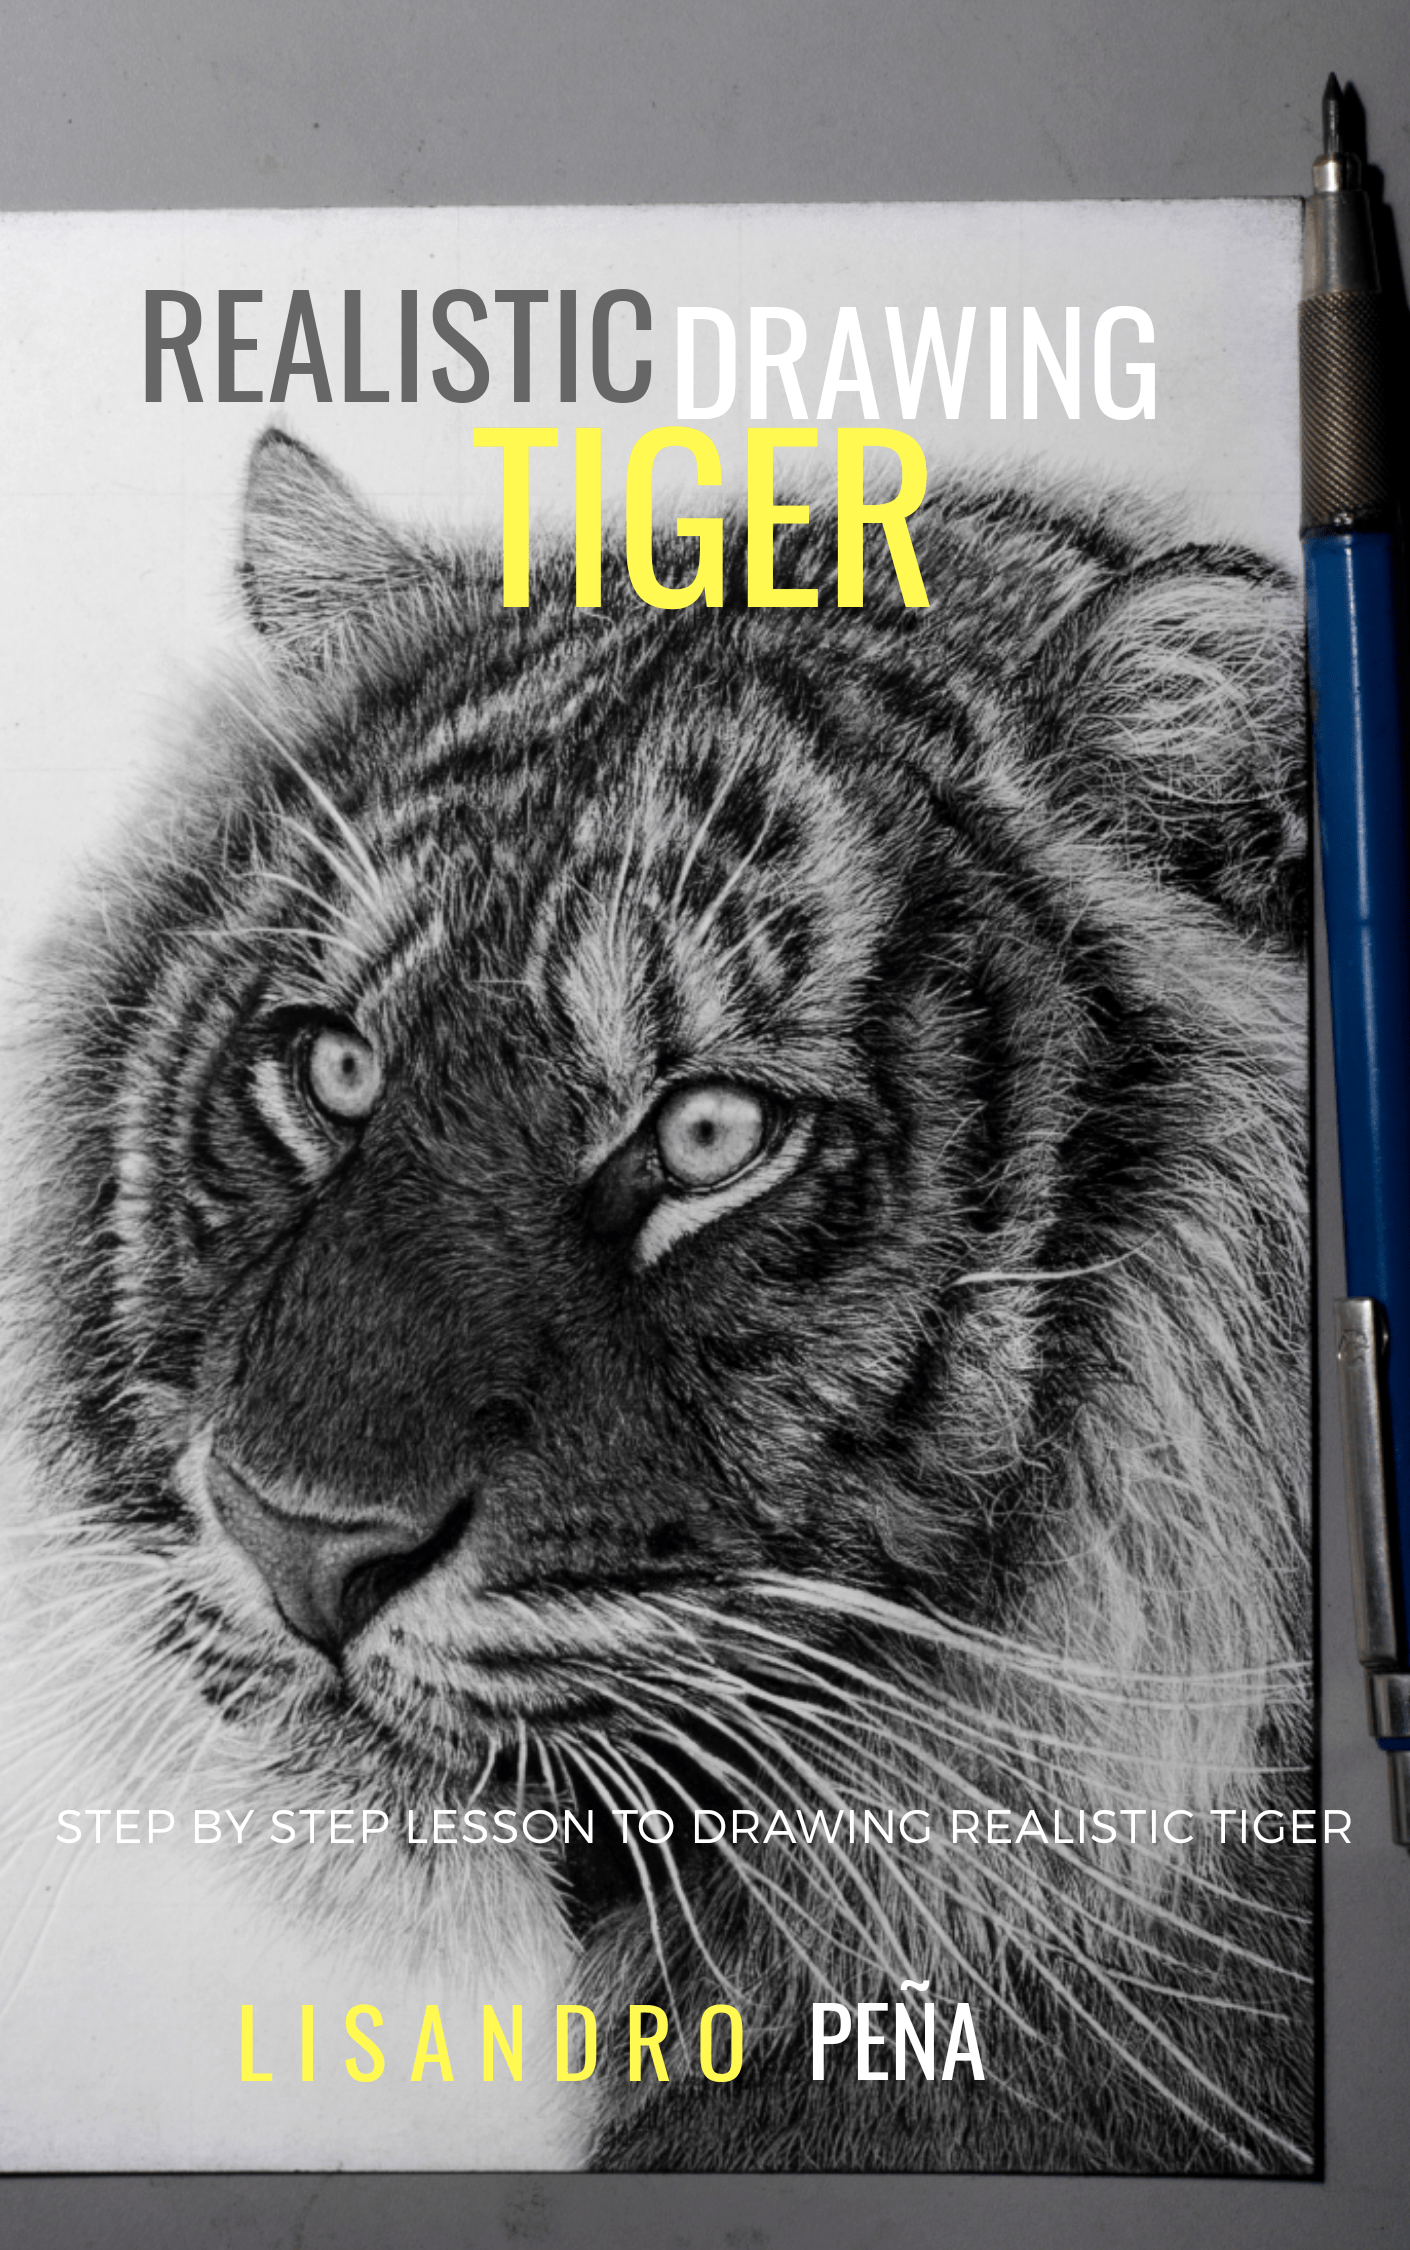 In this intensive 130 page lesson i go over step by step how to draw this realistic tiger